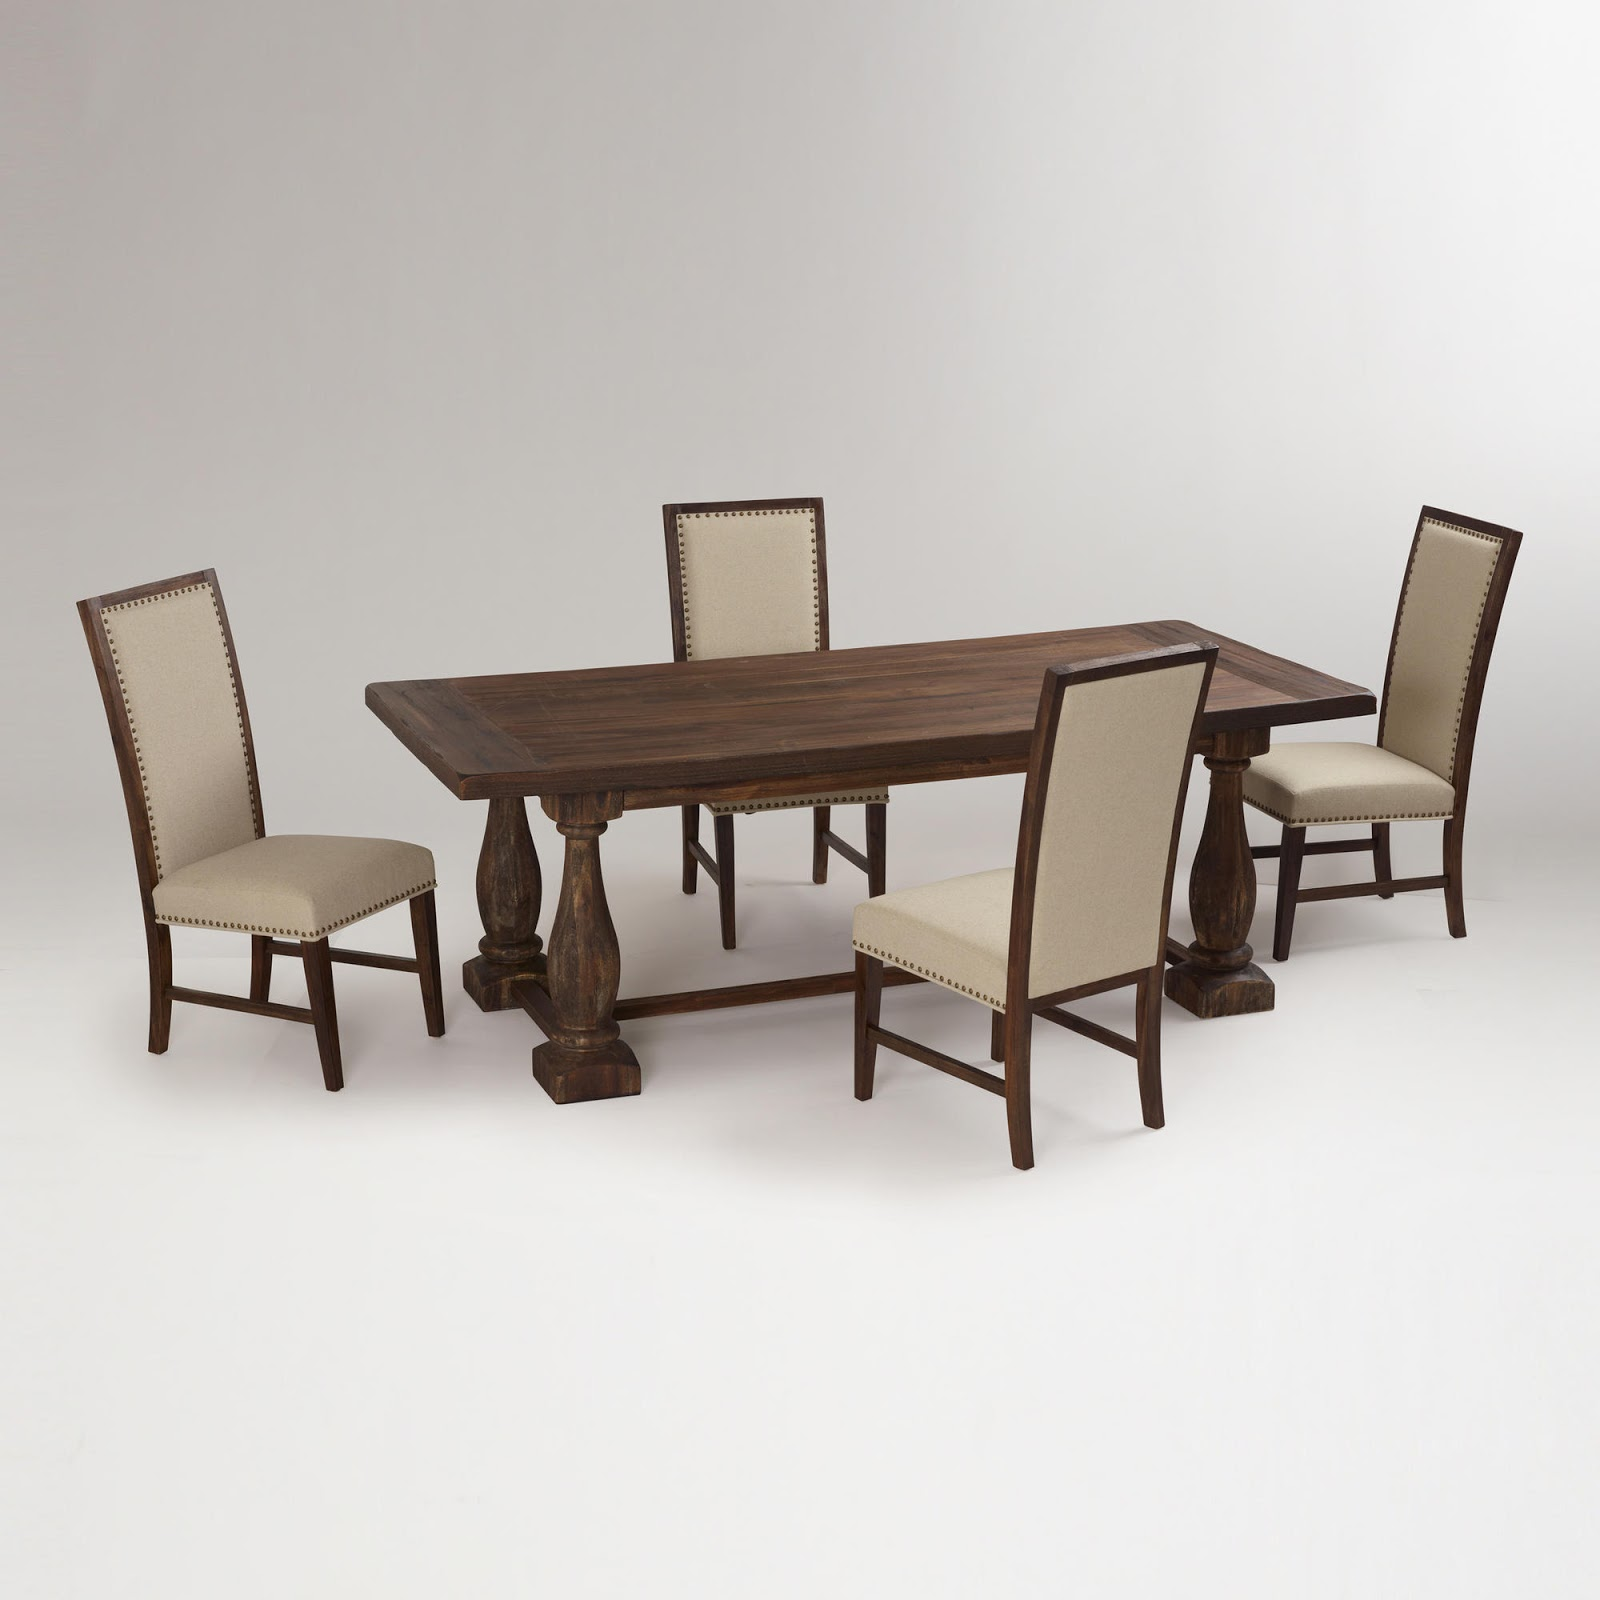 Dining table who makes restoration hardware dining tables for Who manufactures restoration hardware furniture